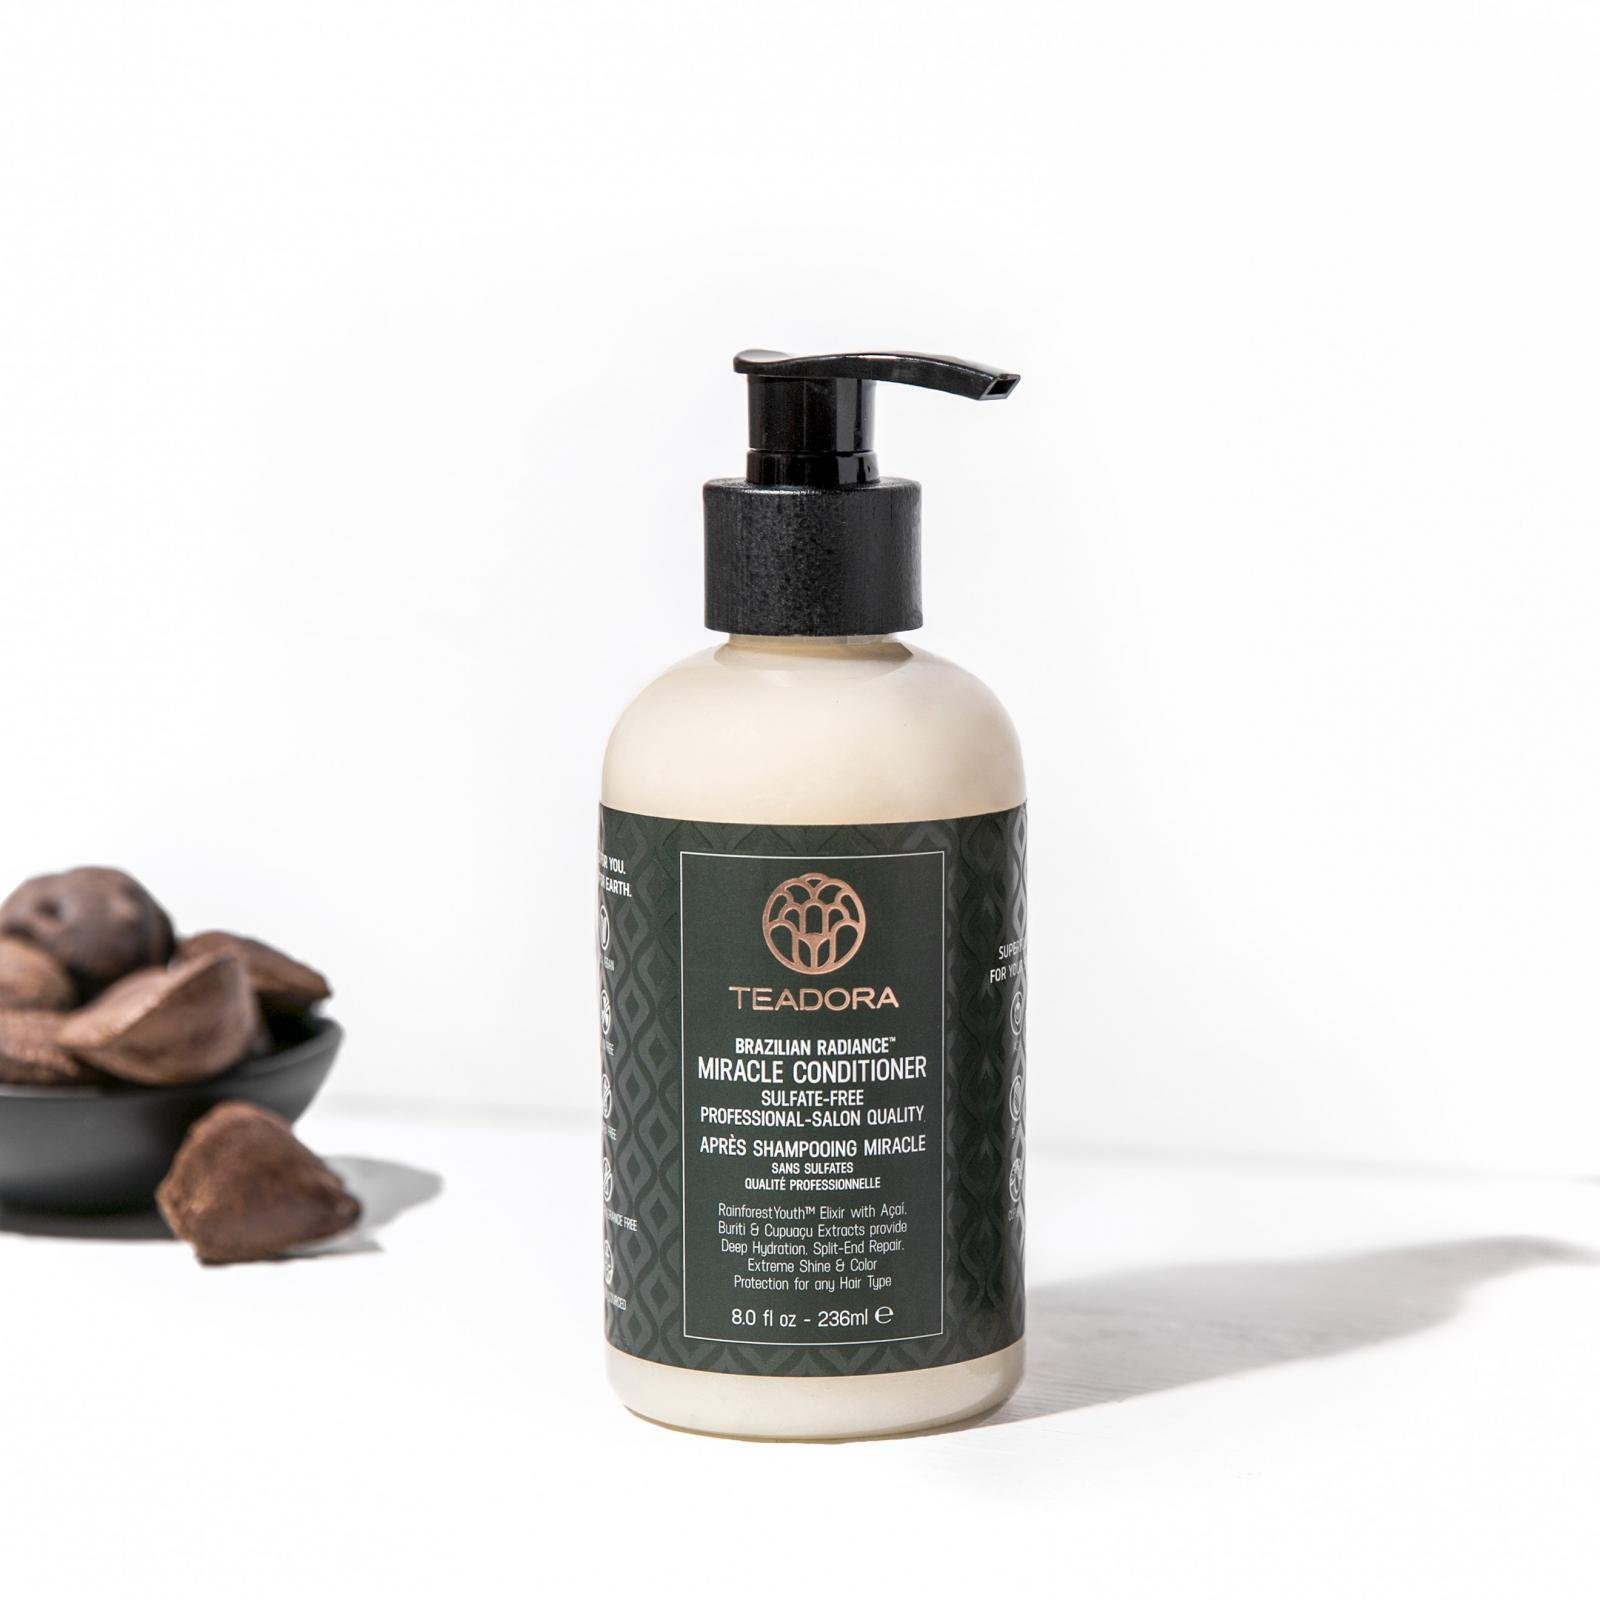 BRAZILIAN RADIANCE MIRACLE CONDITIONER. SULFATE-FREE.